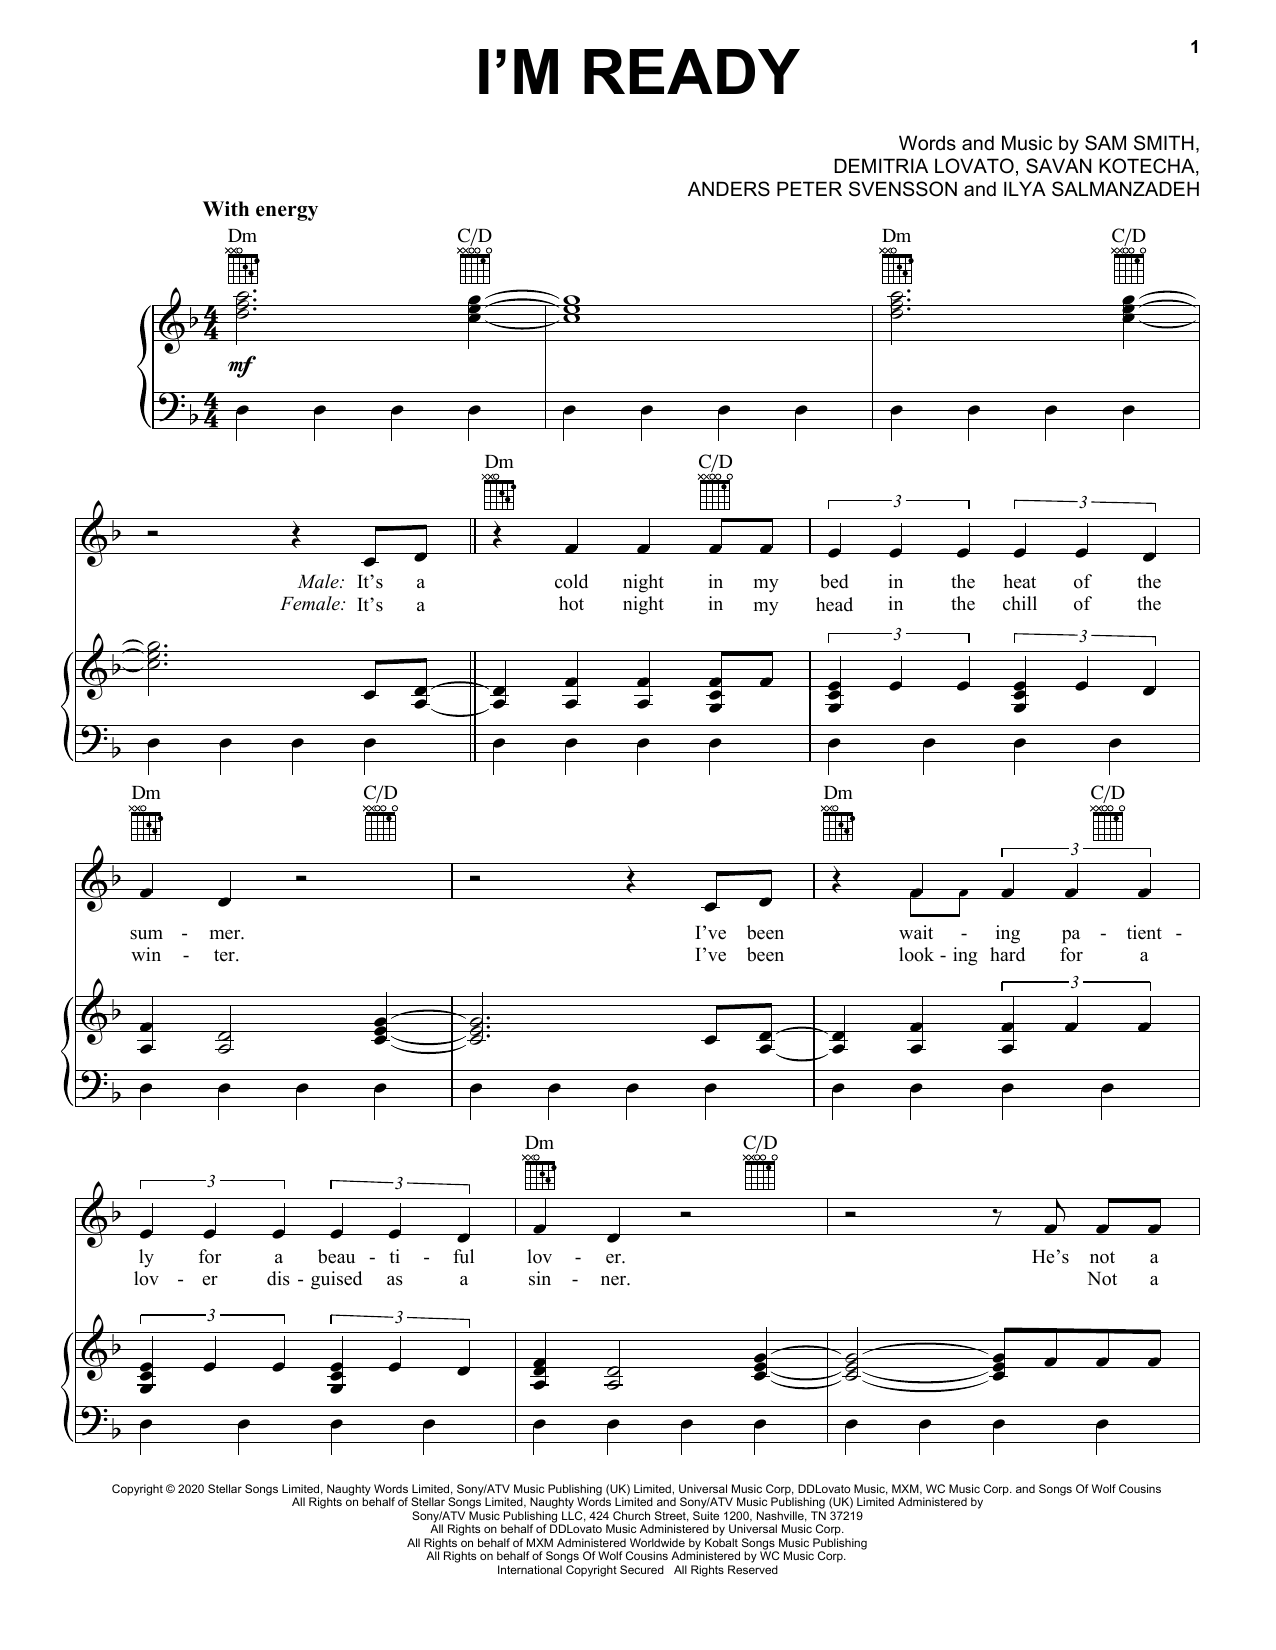 Sam Smith Demi Lovato I M Ready Sheet Music Notes Chords Score Download Printable Pdf In 2020 Sheet Music Notes Music Notes Pop Sheet Music